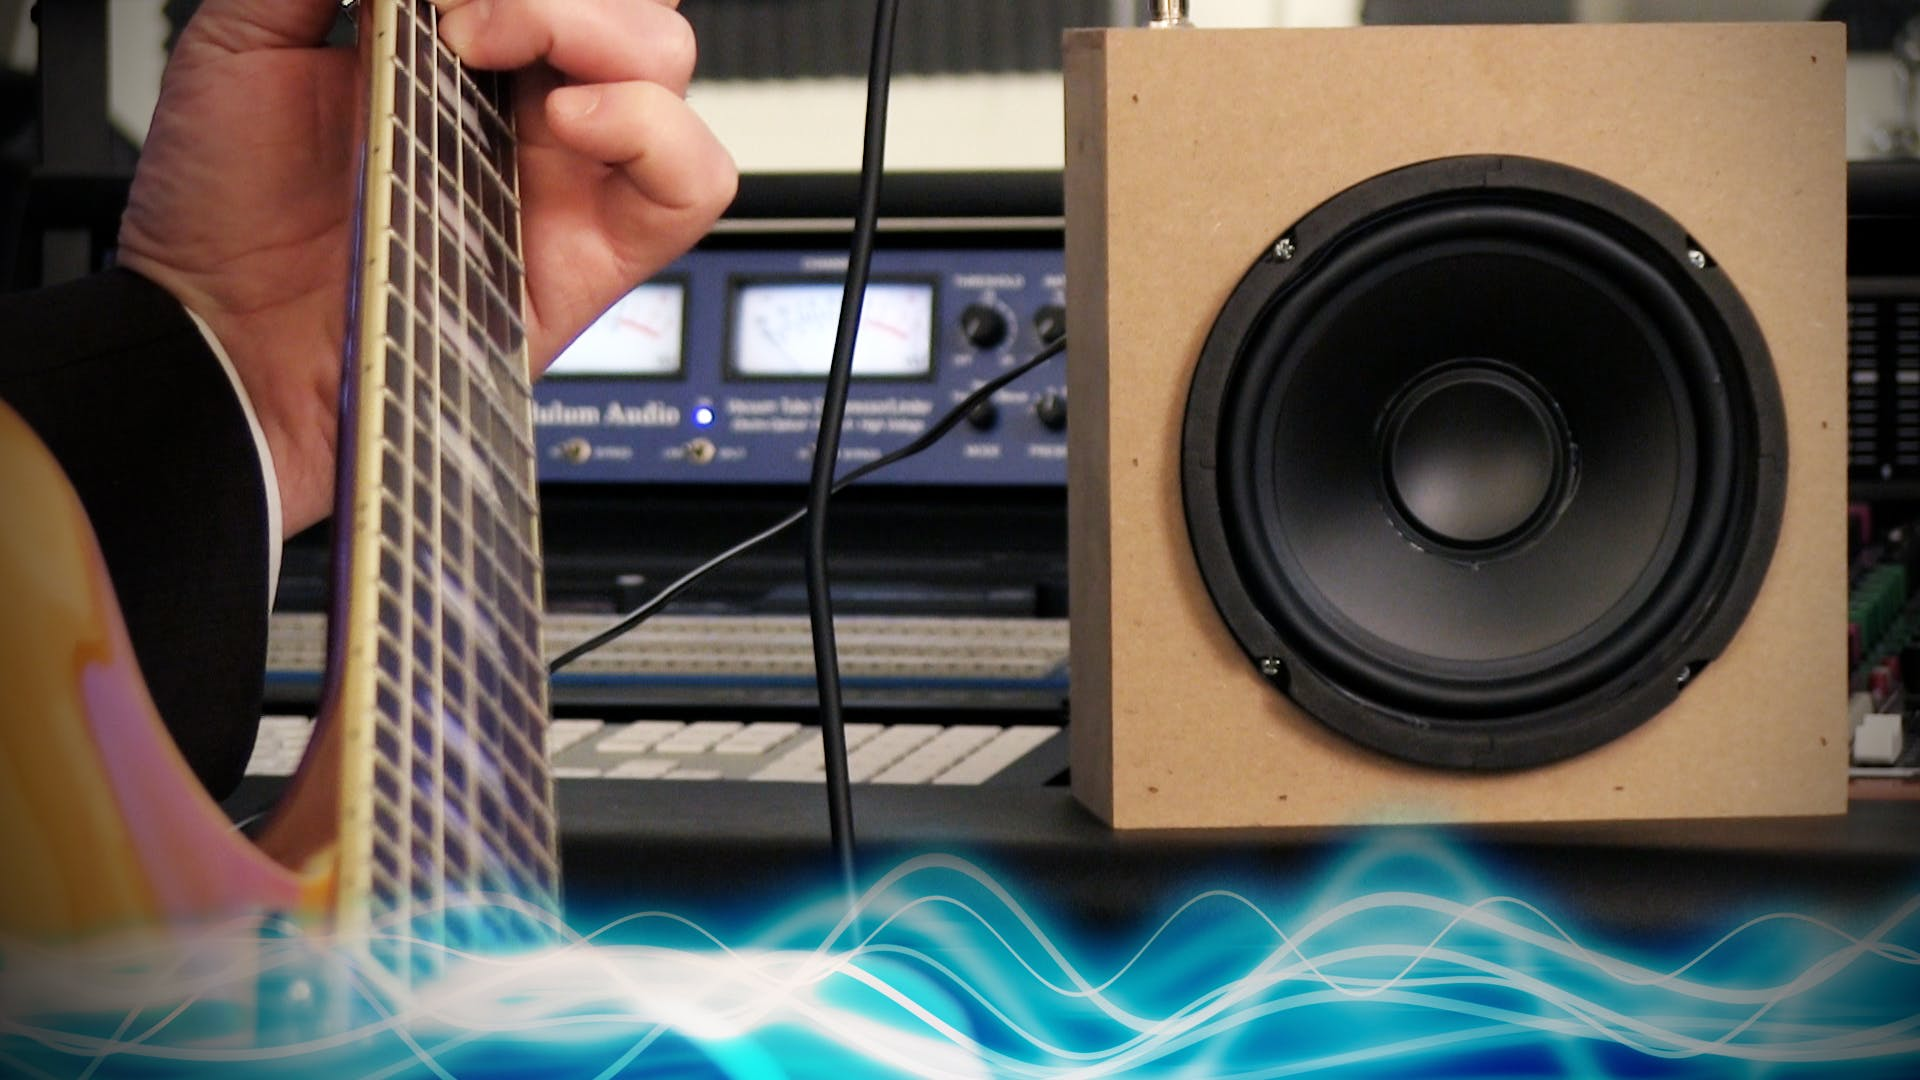 Fundamentals Of Audio And Music Engineering Part 1 Musical Sound Ac Circuit Experiment Box Electrical Training Equipment Basic Electronics Coursera